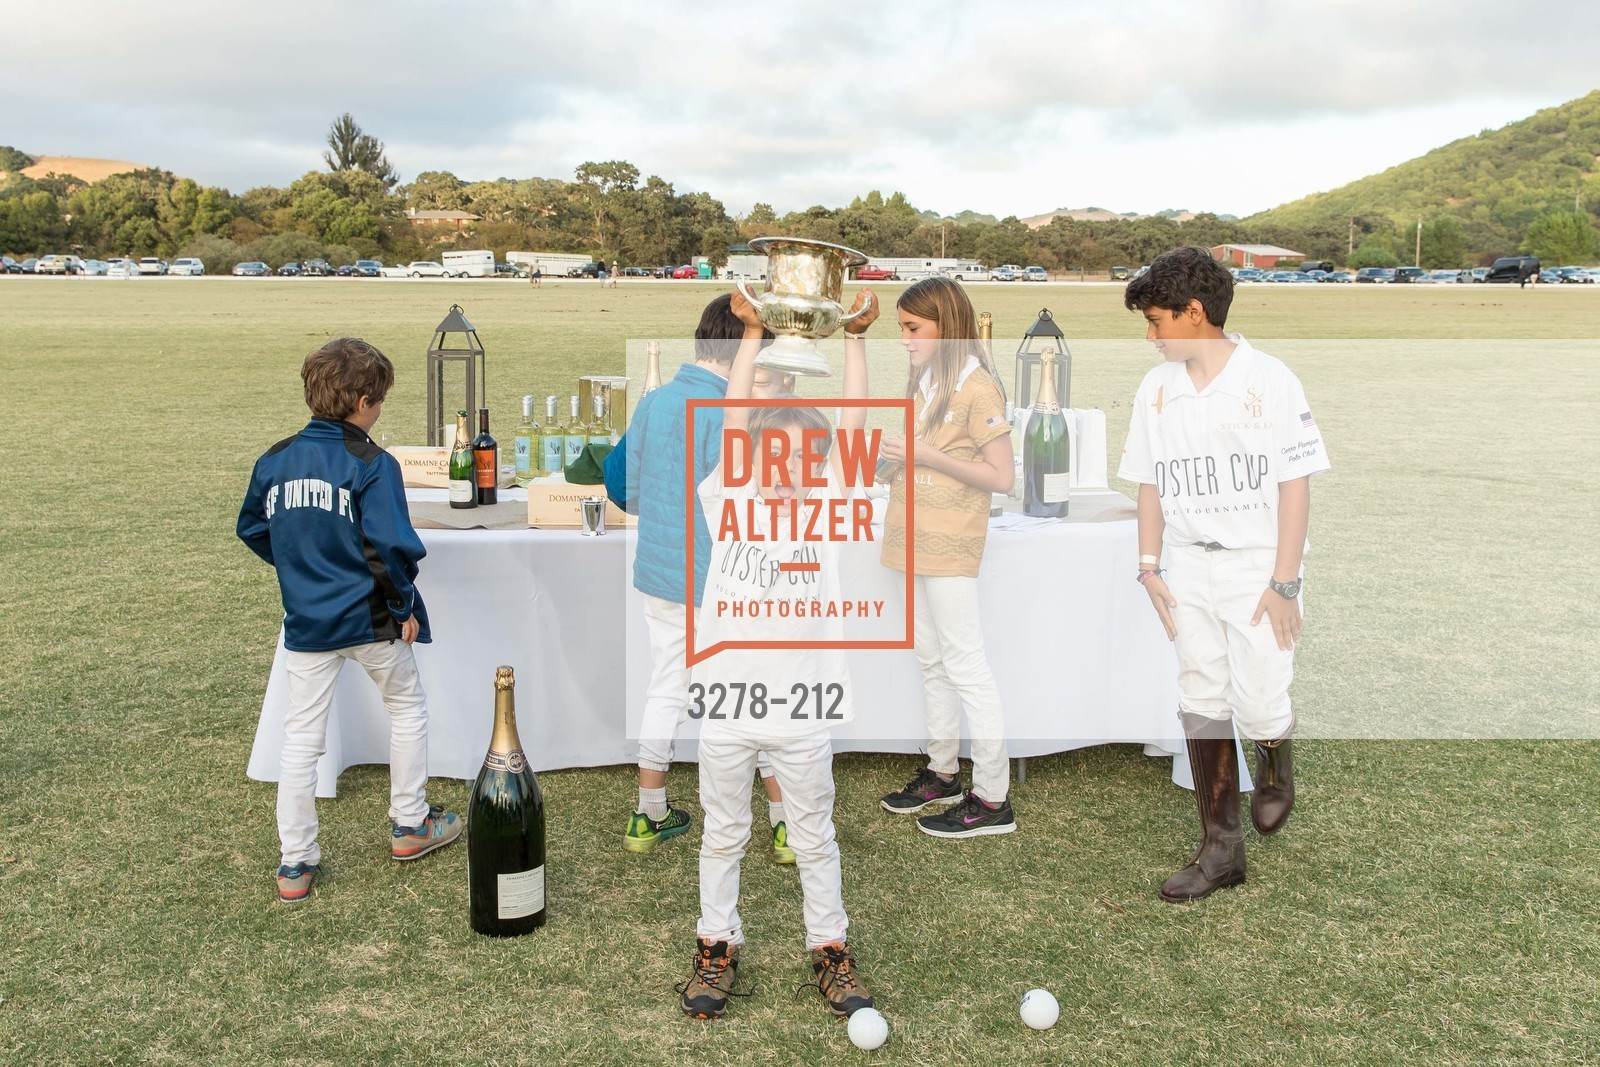 Extras, Stick & Ball Oyster Cup Polo Tournament, July 25th, 2015, Photo,Drew Altizer, Drew Altizer Photography, full-service event agency, private events, San Francisco photographer, photographer California